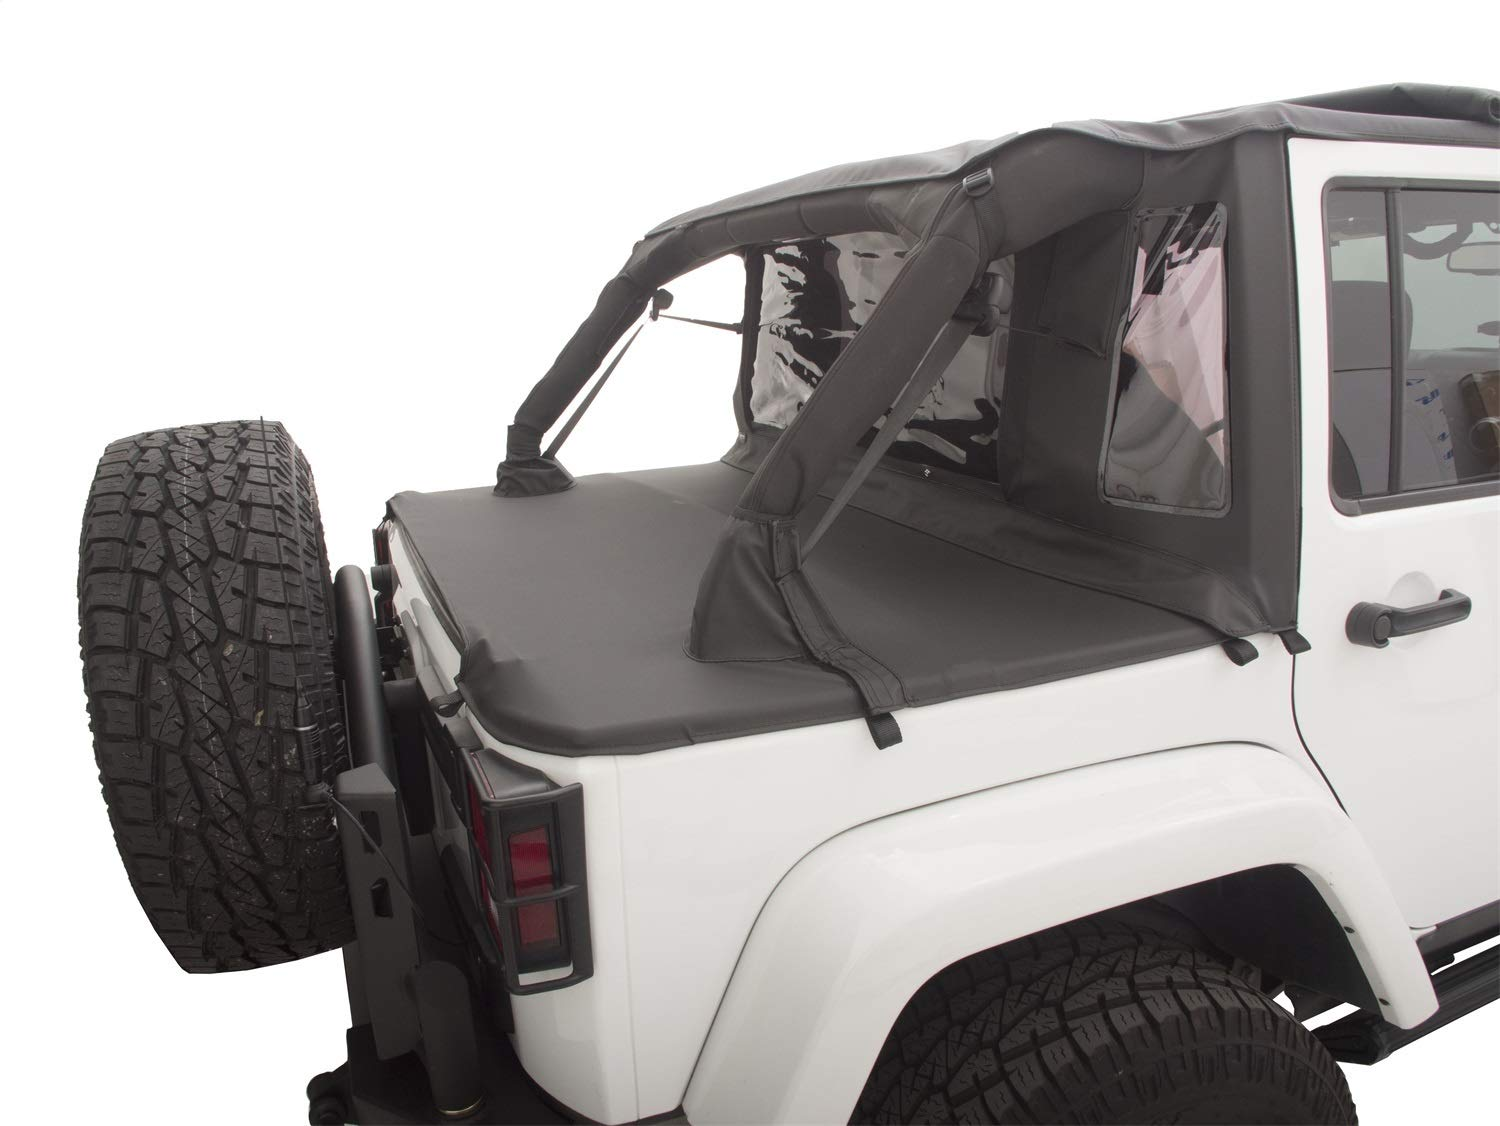 Jeep Wrangler Soft Top >> Rampage Products 990135 Black Trailview Soft Top With Tonneau Style Rear Cover For Jeep Jk Unlimited 4 Door 2007 2017